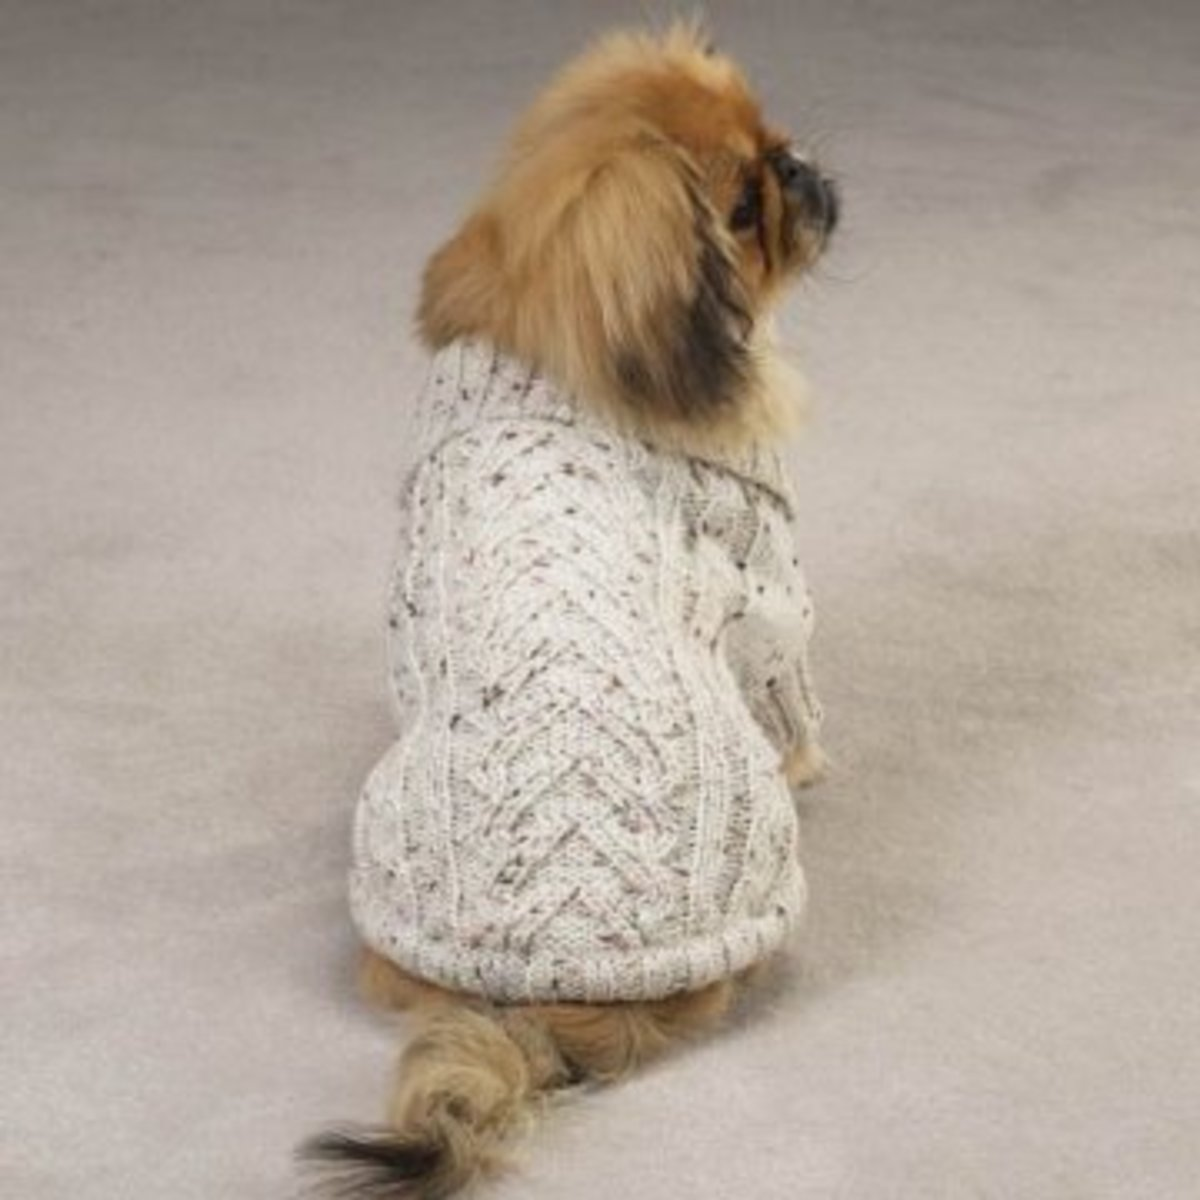 Knitting Pattern Dog Jacket : 6 Free Dog Coat Knitting Patterns - Keep your dog Warm and Cozy with a New Coat!